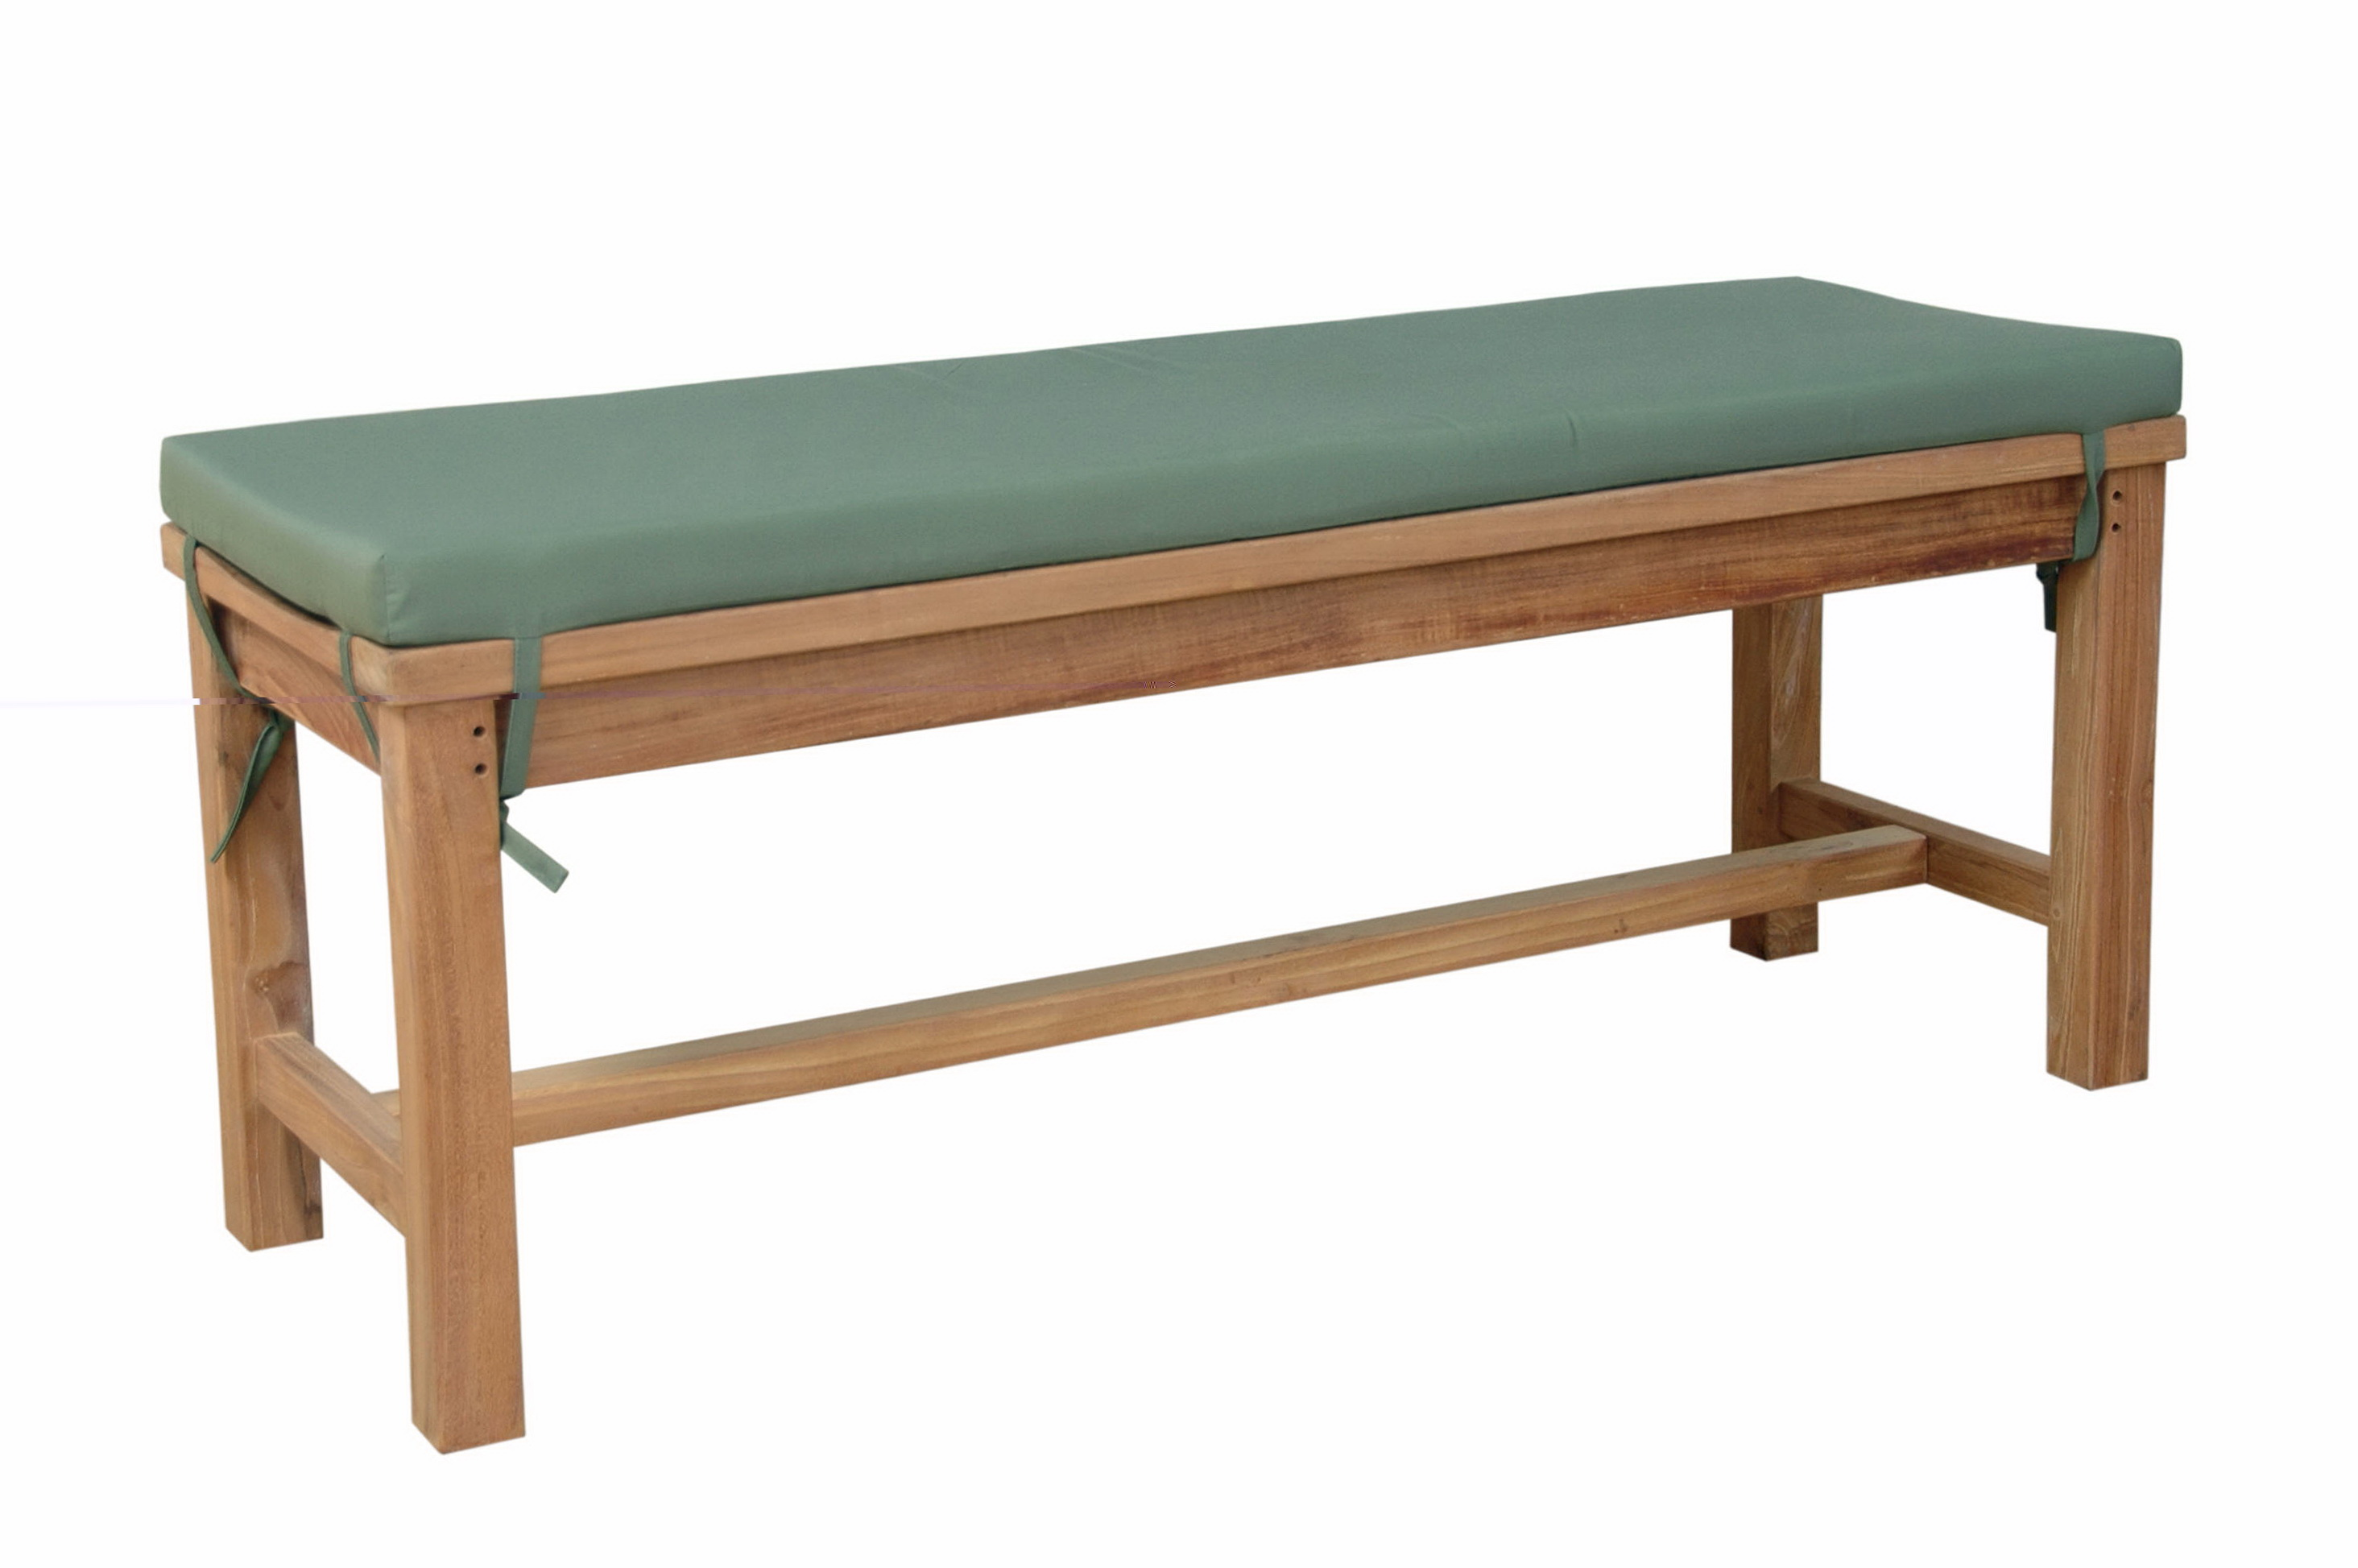 Long Cushion For Bench Home Design Ideas